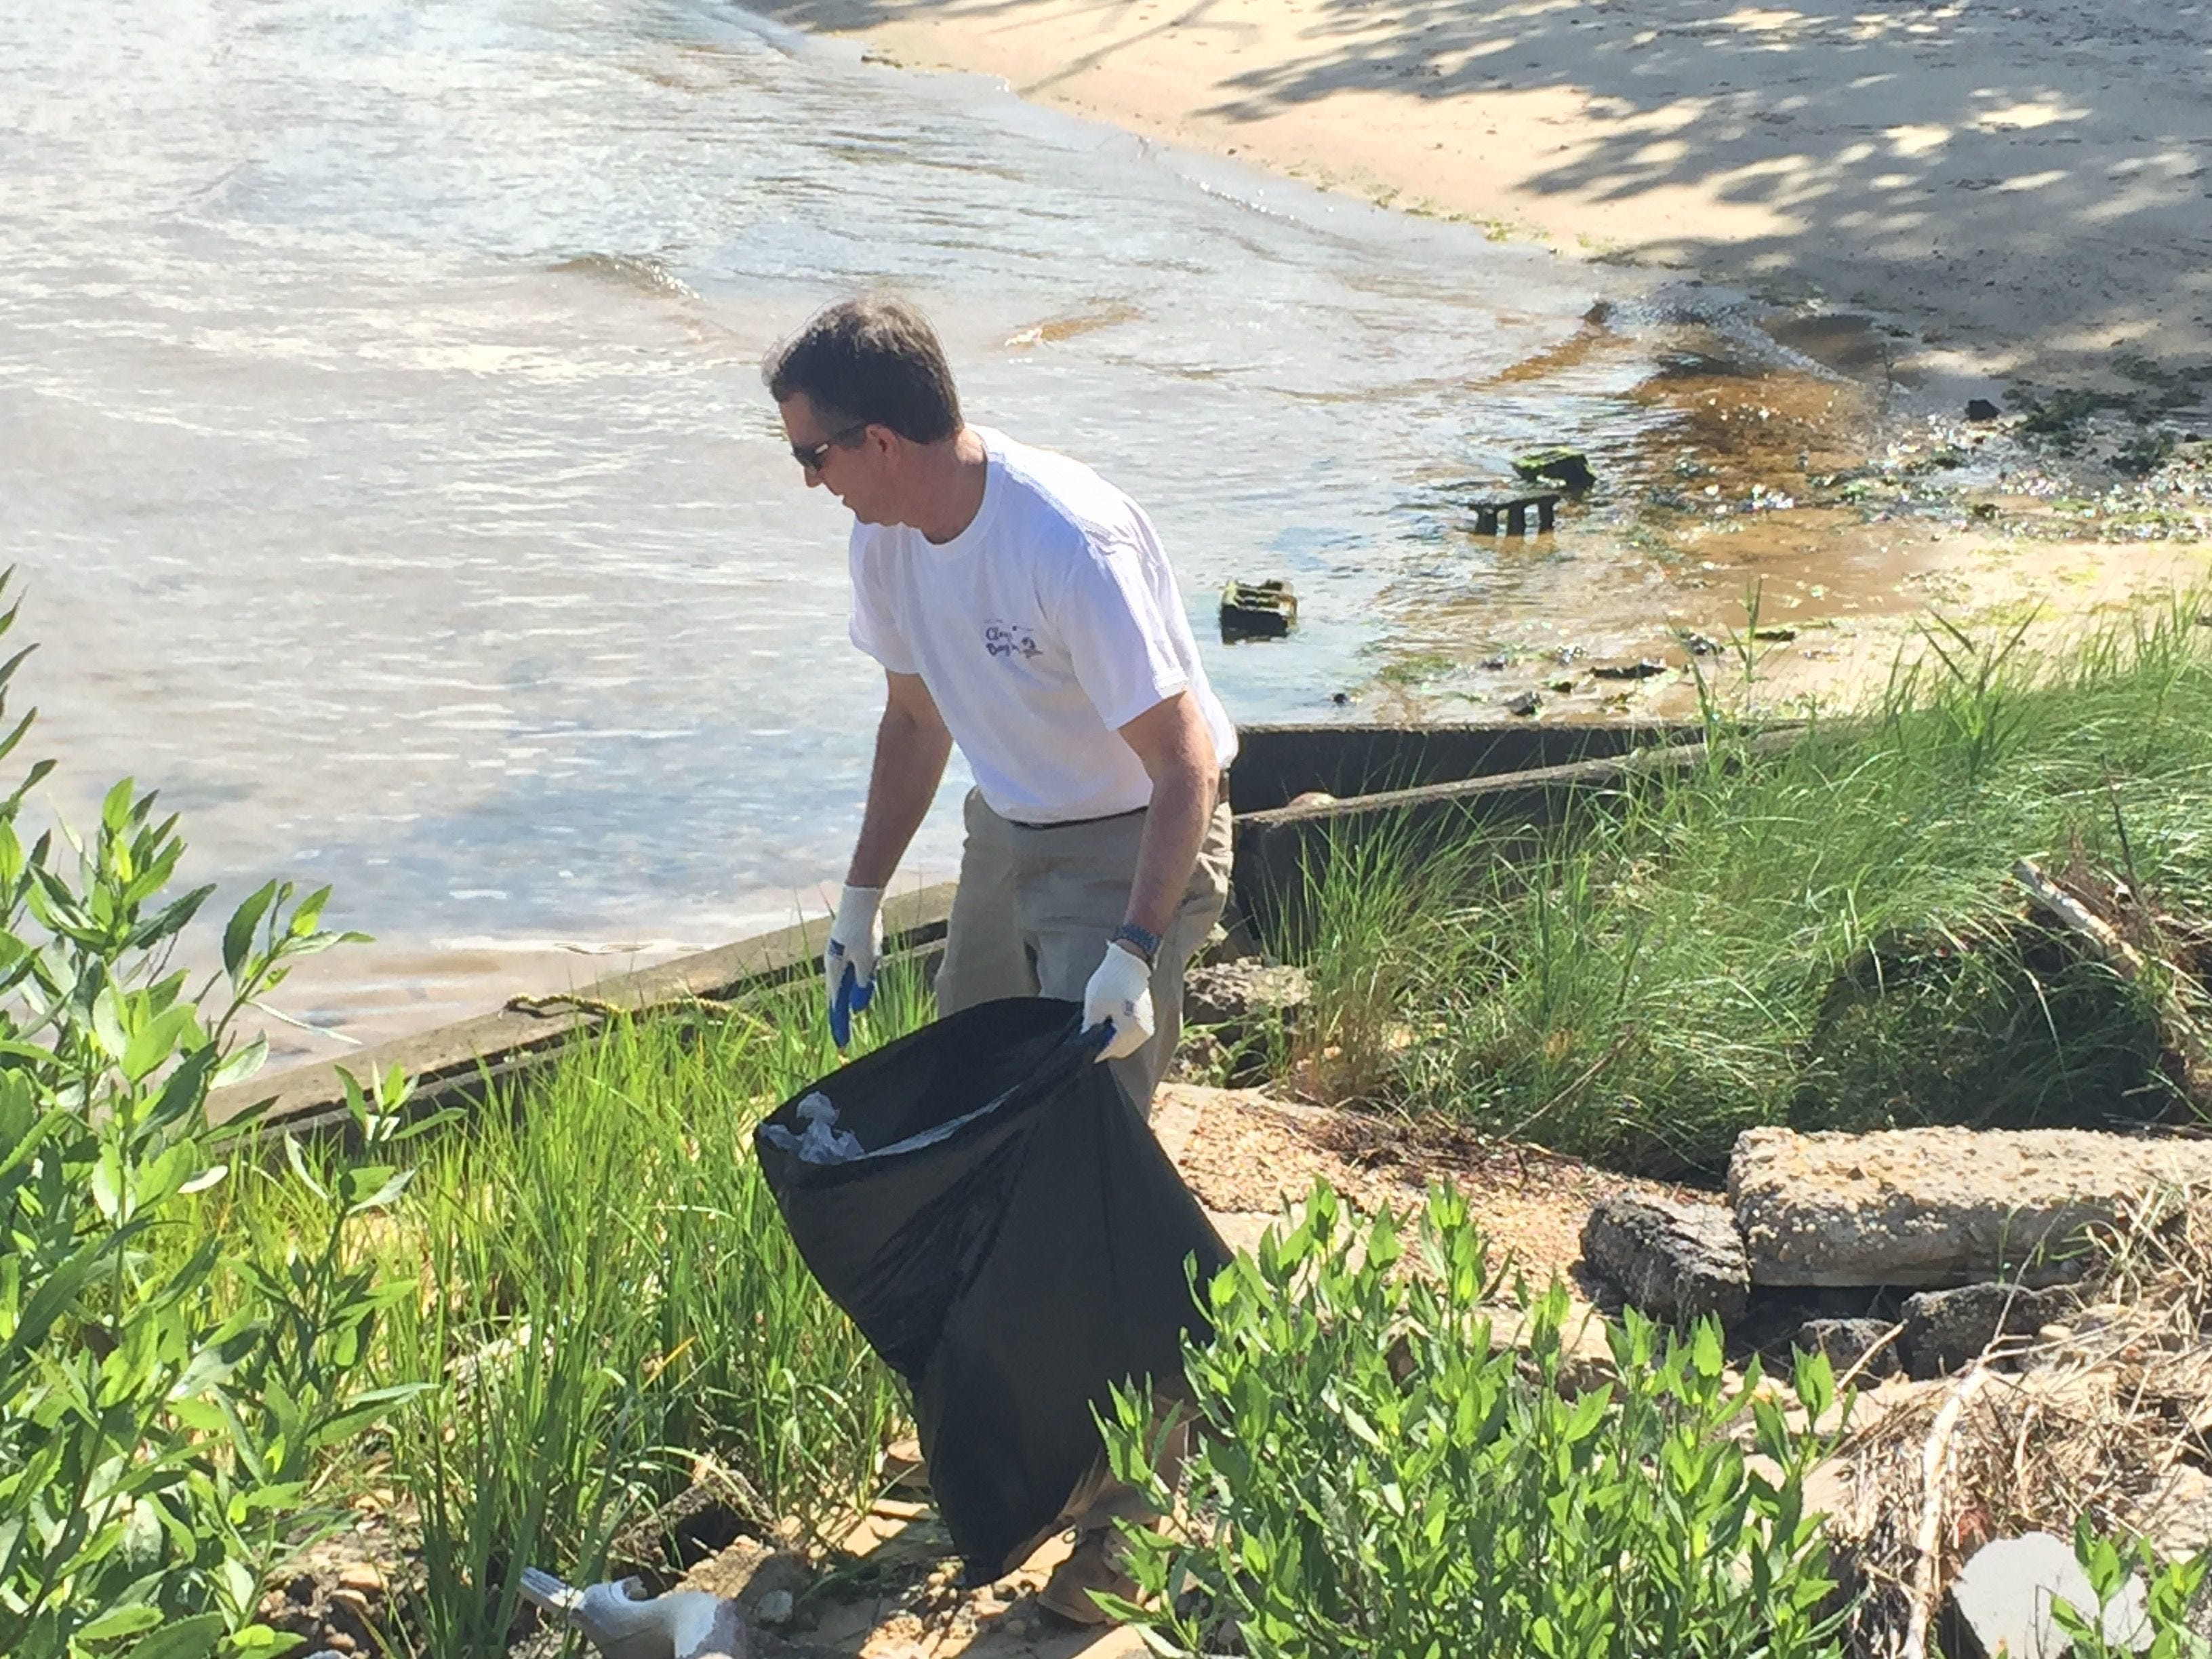 Gov. Ralph Northam picks up trash along Cape Charles Harbor during a Clean the Bay event in Cape Charles on Saturday, June 2, 2018.